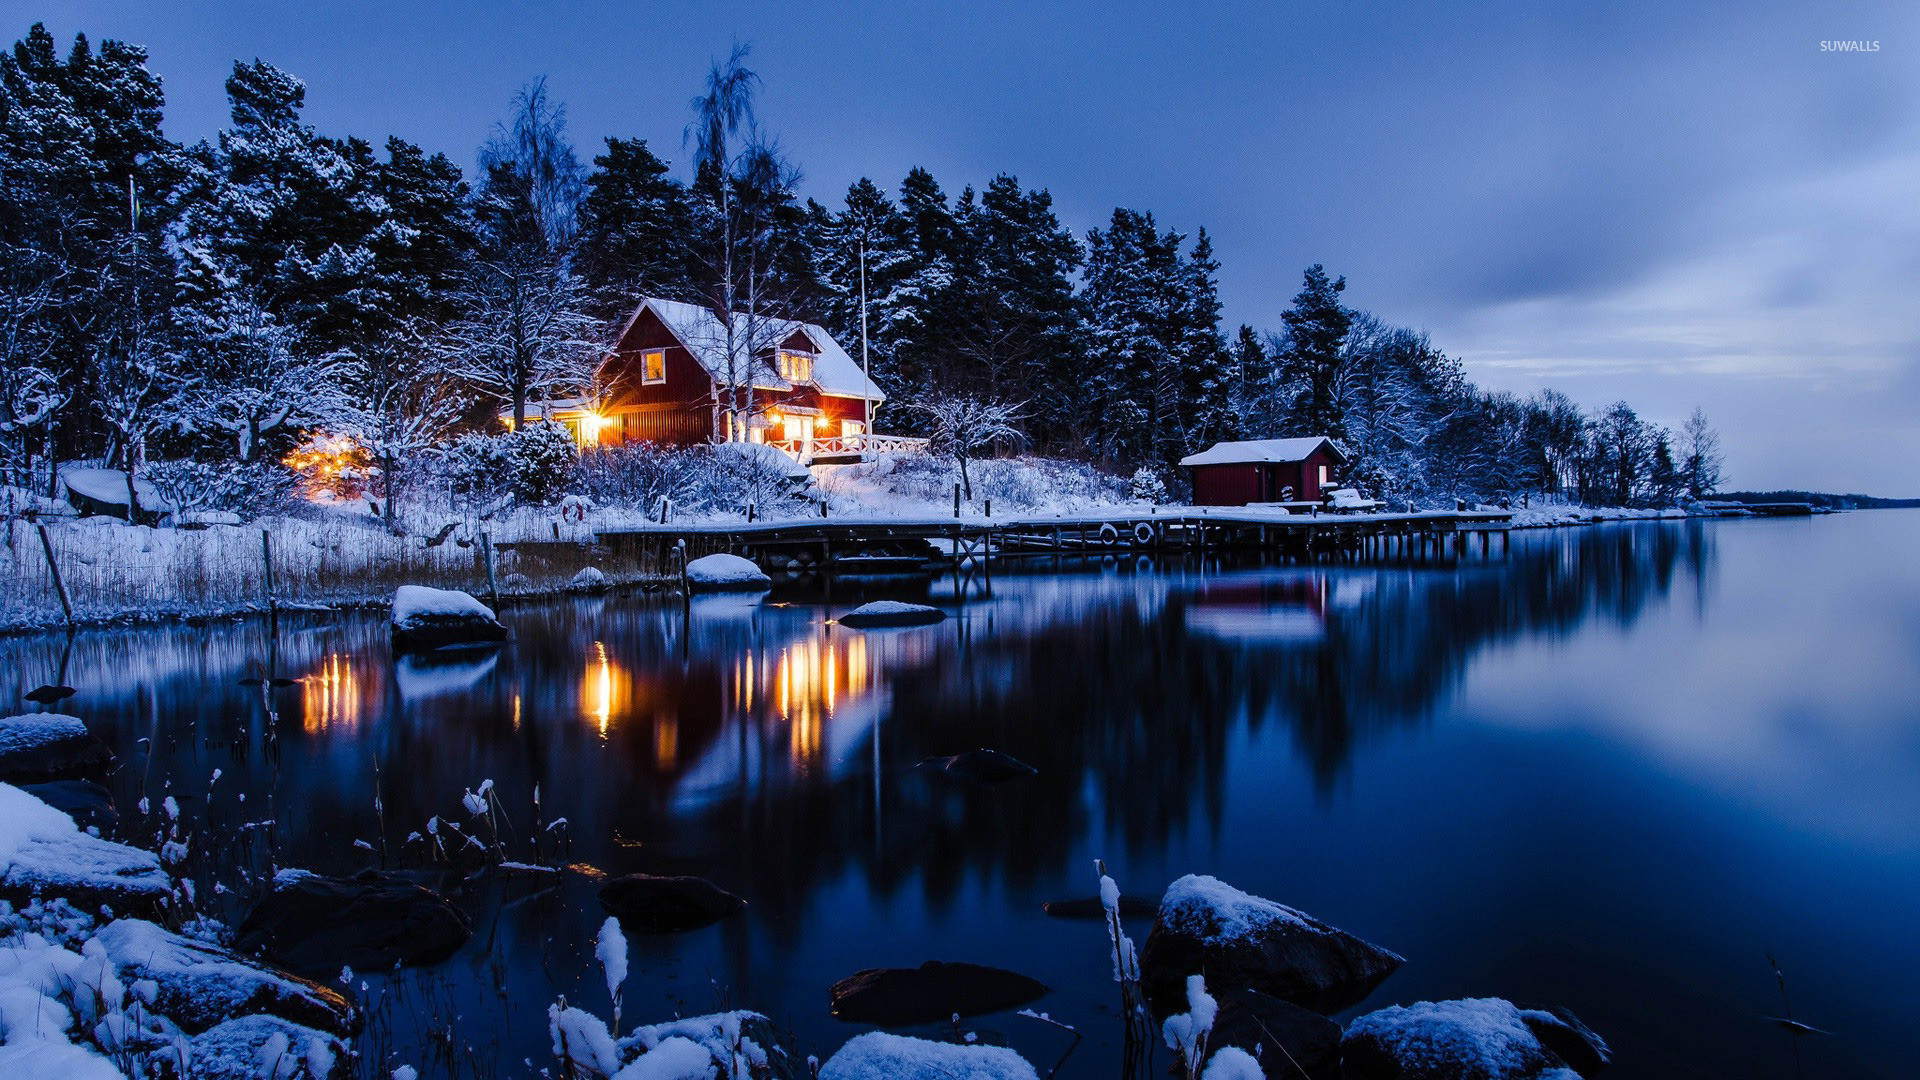 1920x1080  Lakeside winter cabin wallpaper · 0 · Download · Res: 2560x1600  ...